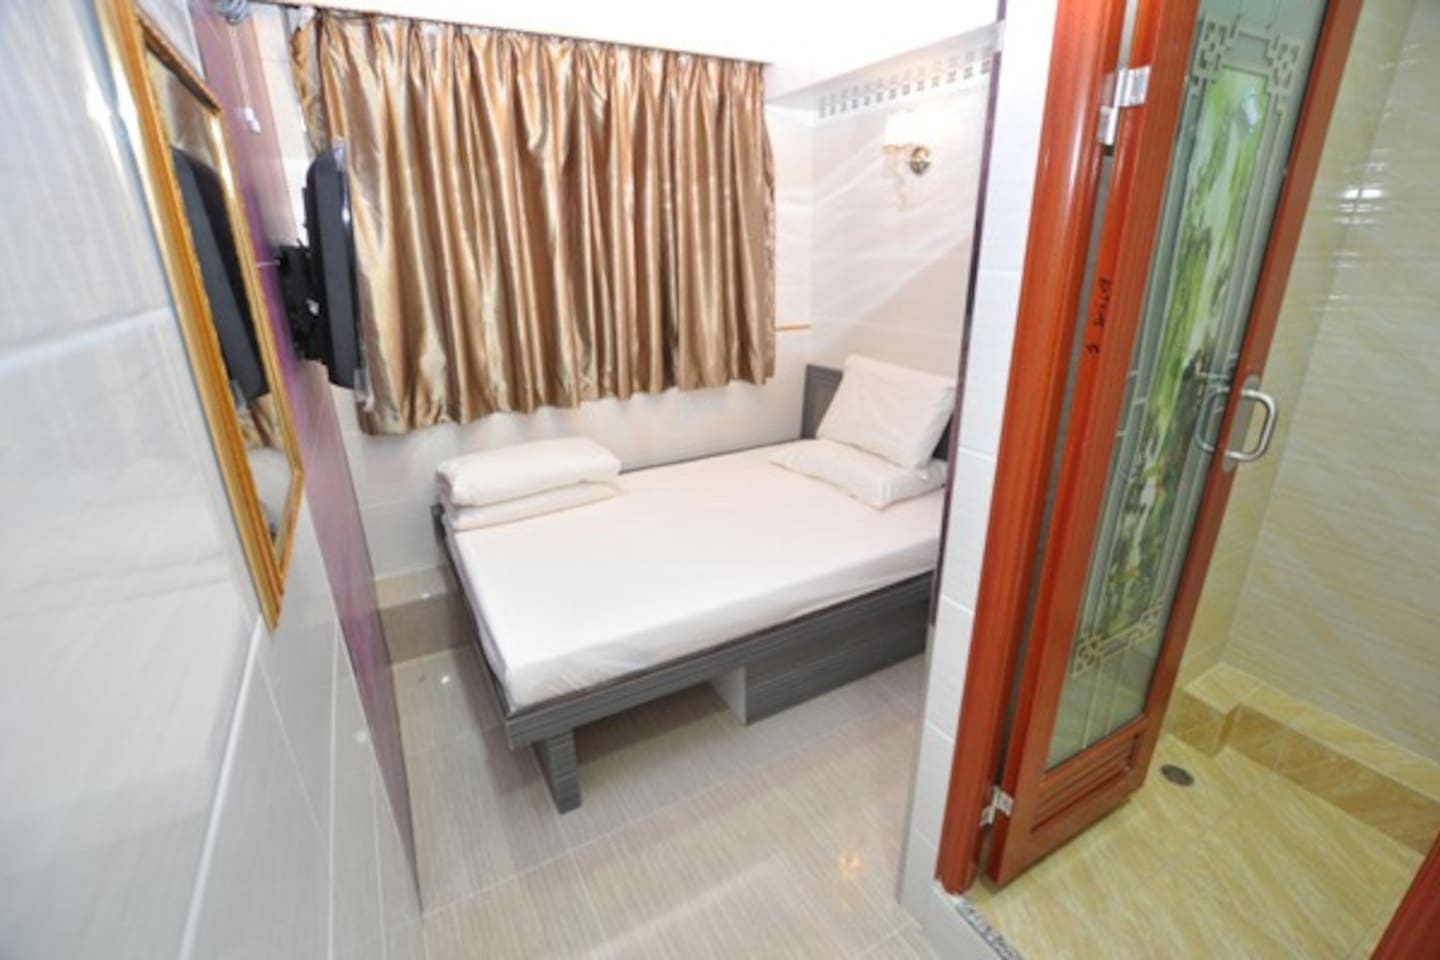 one bed for two people (1.3没*1.8m)24hrs hot water shower free WIFI ,TV, air-con